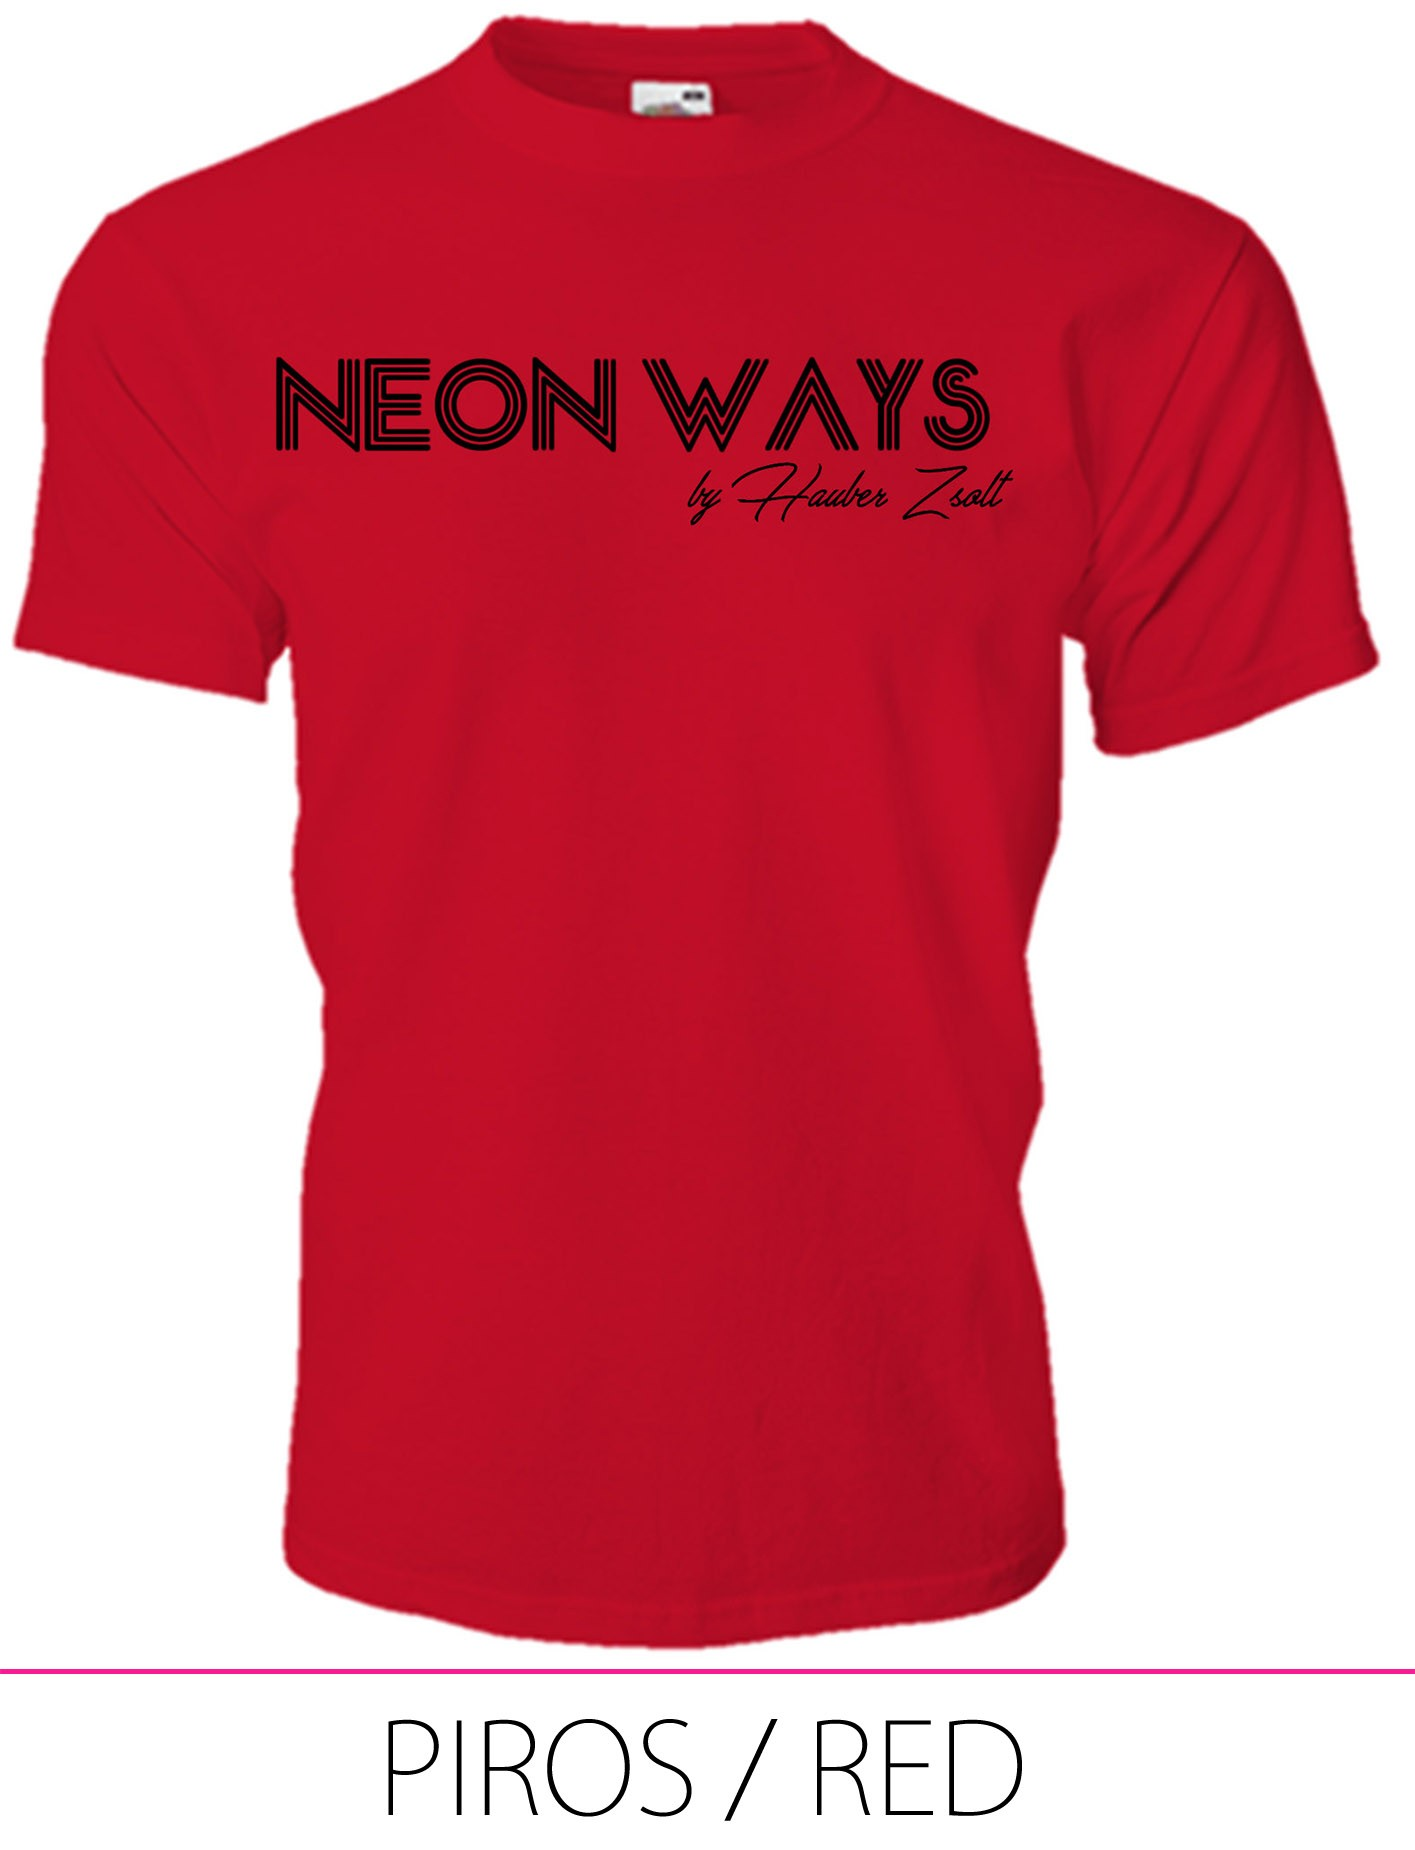 KIDS CREW NECK T-SHIRT NEON WAYS RED